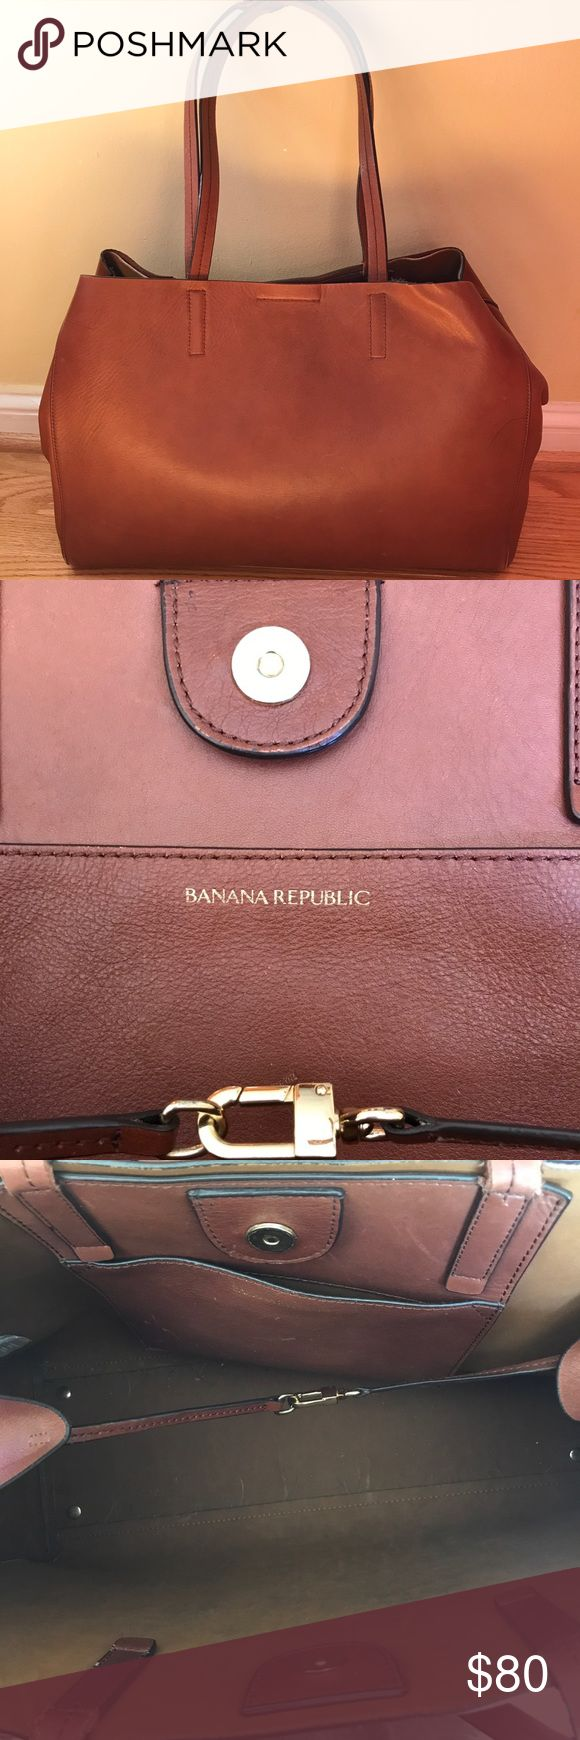 Banana Republic Brown Leather Large Tote Bag Large brown leather tote by Banana Republic. Very spacious with small inside pocket. You'll look great carrying your laptop to work with this bag and any other daily necessities! Still has that great leather smell to it :) See pictures for closer look/minor damages Banana Republic Bags Totes